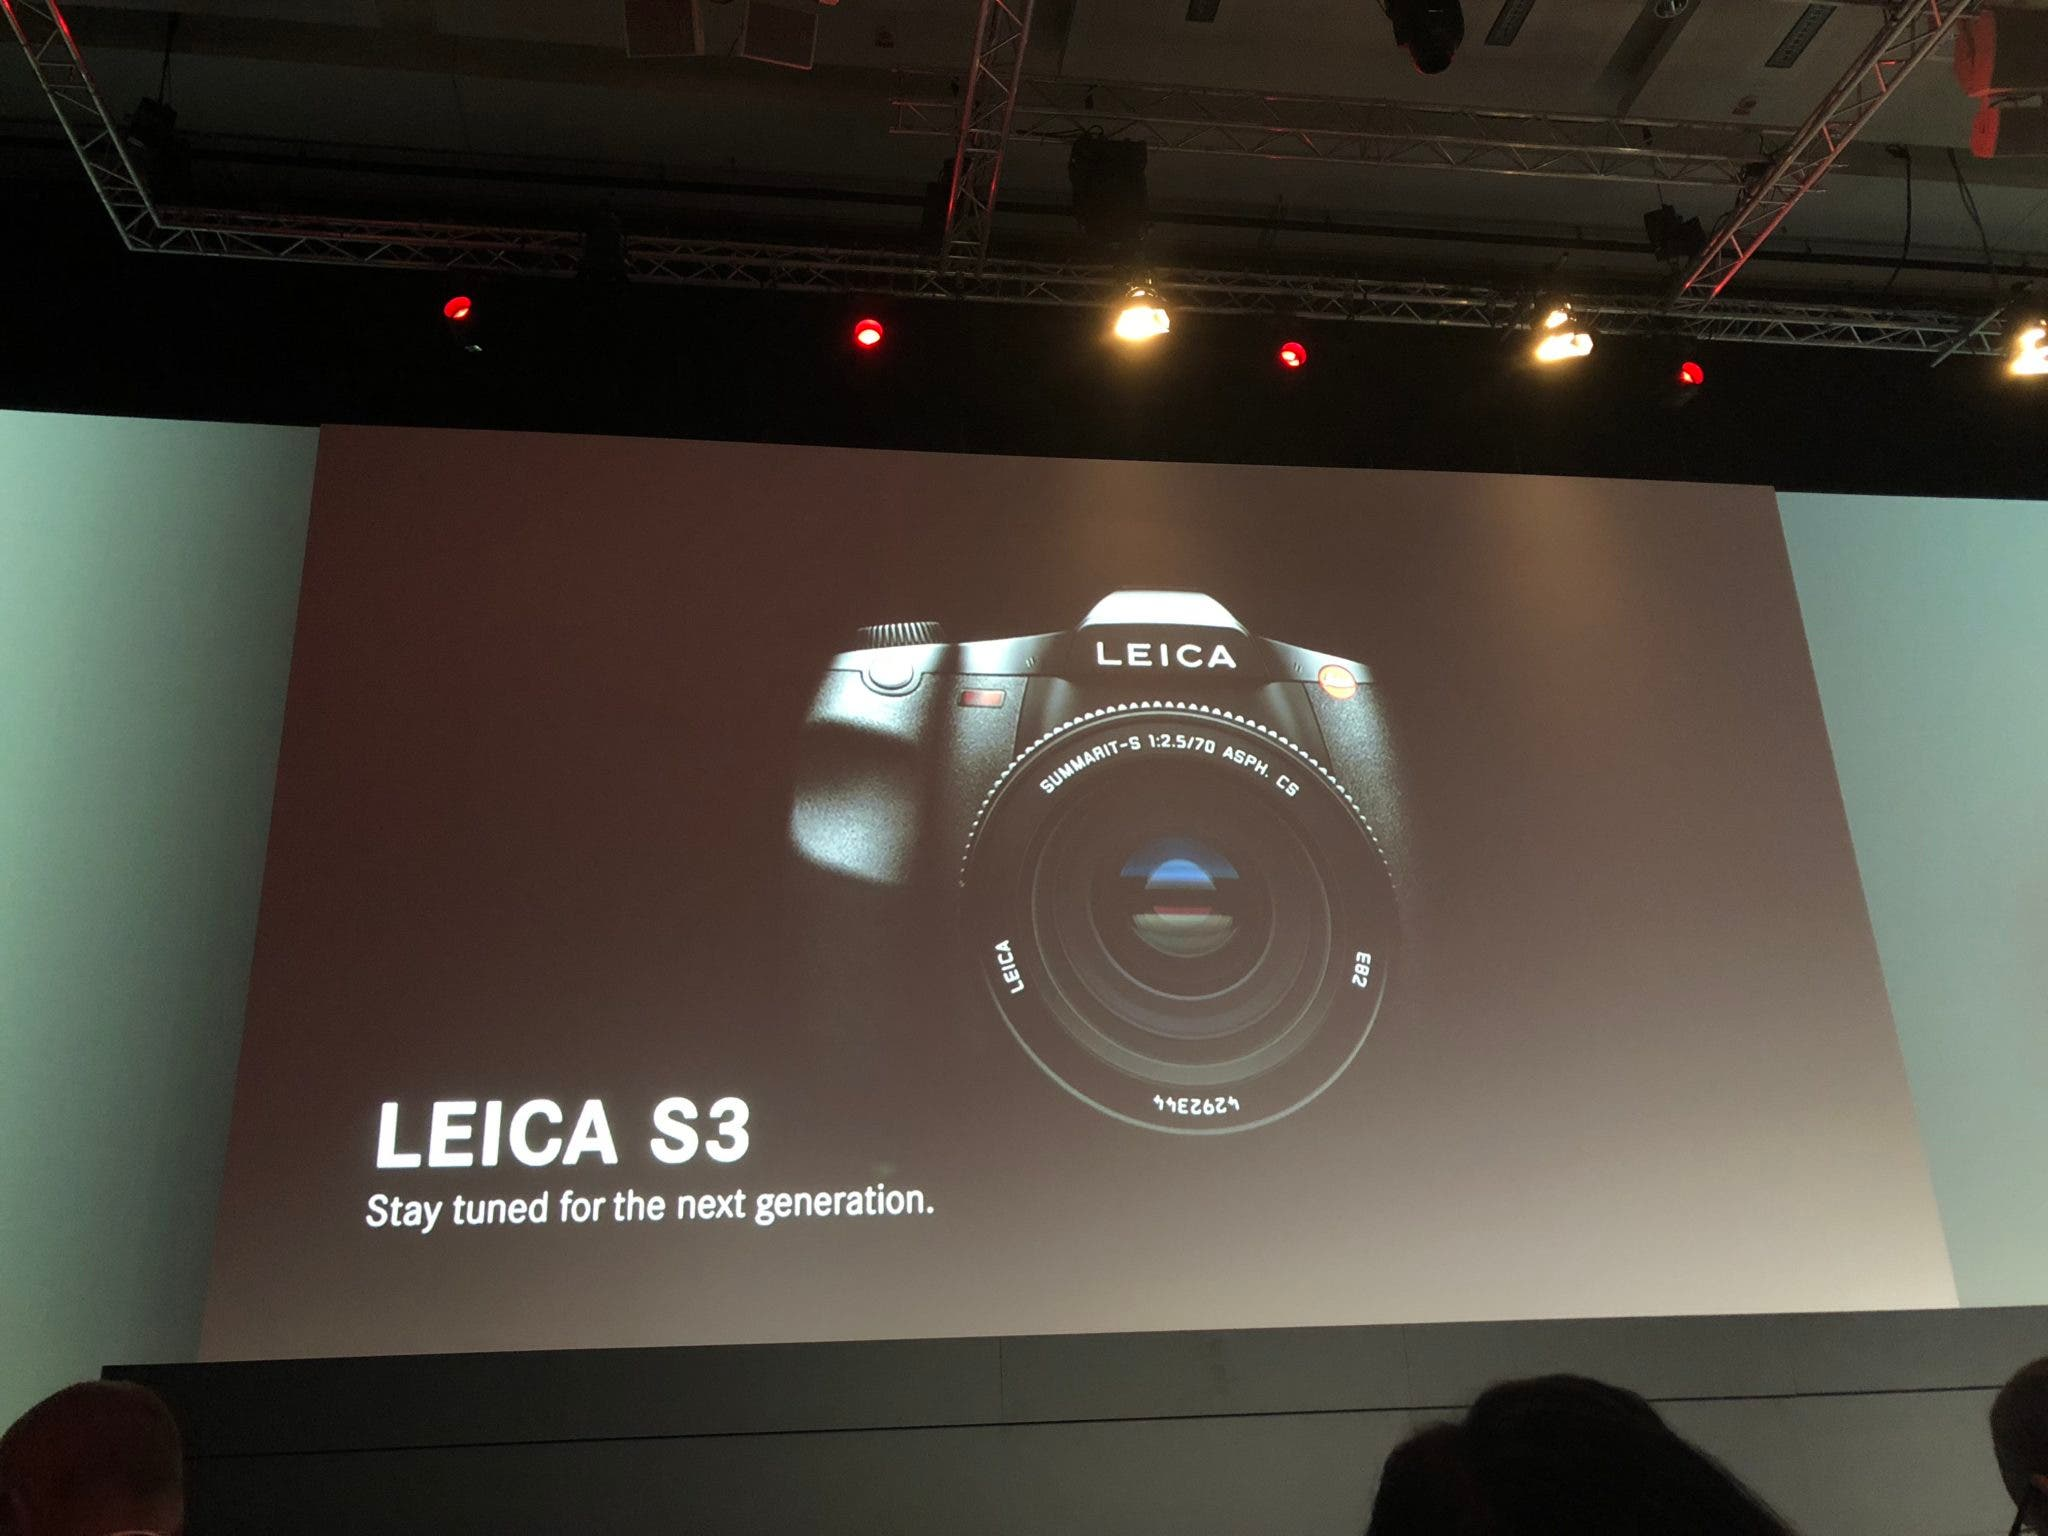 The Leica S3 is the Company's Latest Medium Format Camera